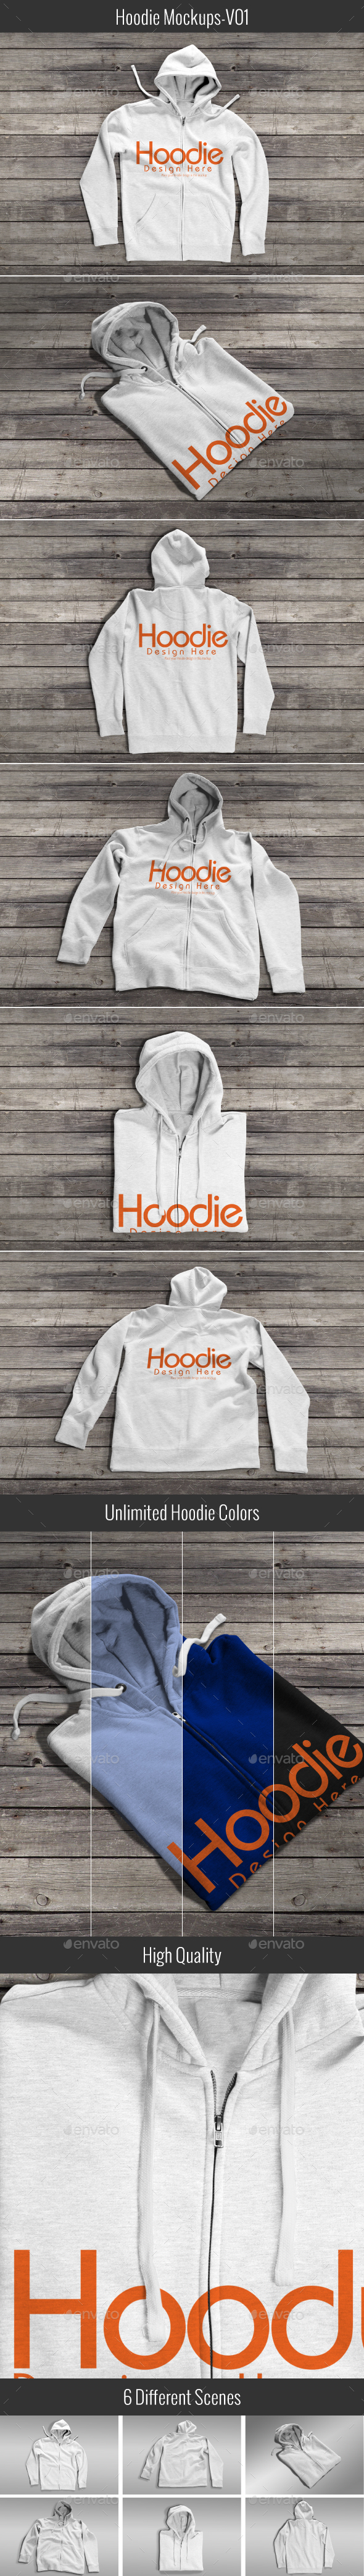 Hoodie Mock-up V01 - Apparel Product Mock-Ups